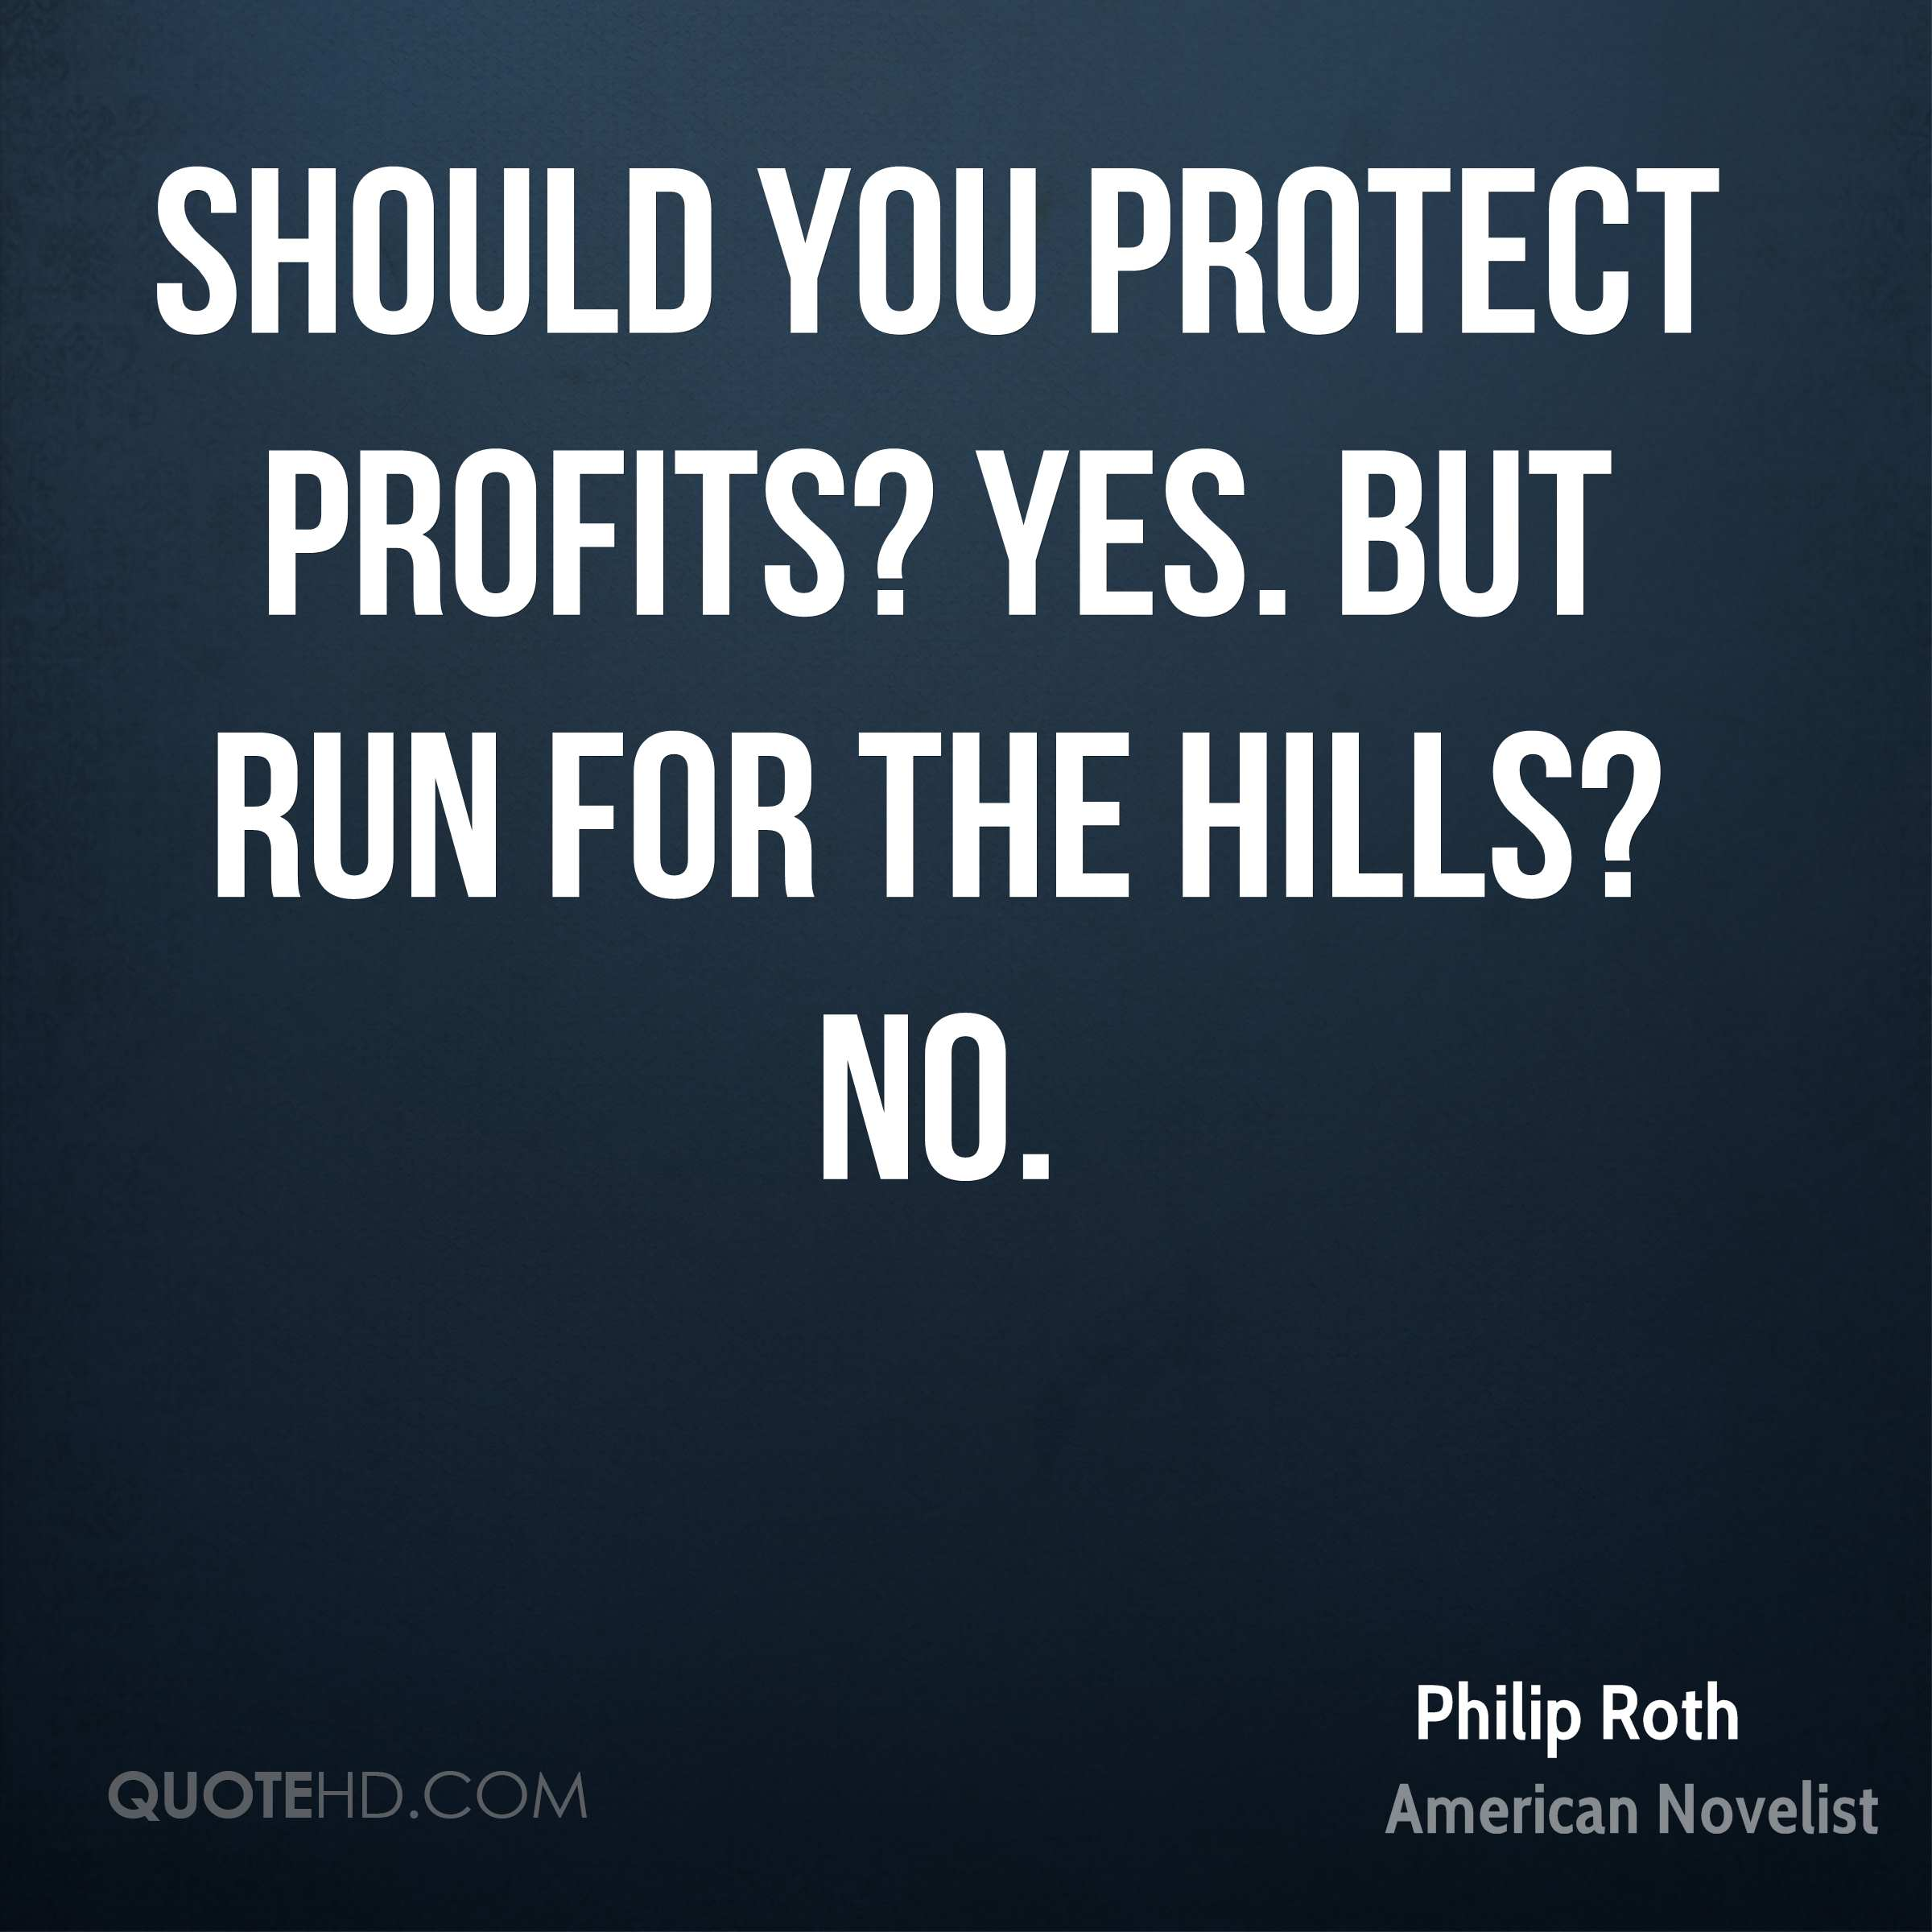 Should you protect profits? Yes. But run for the hills? No.